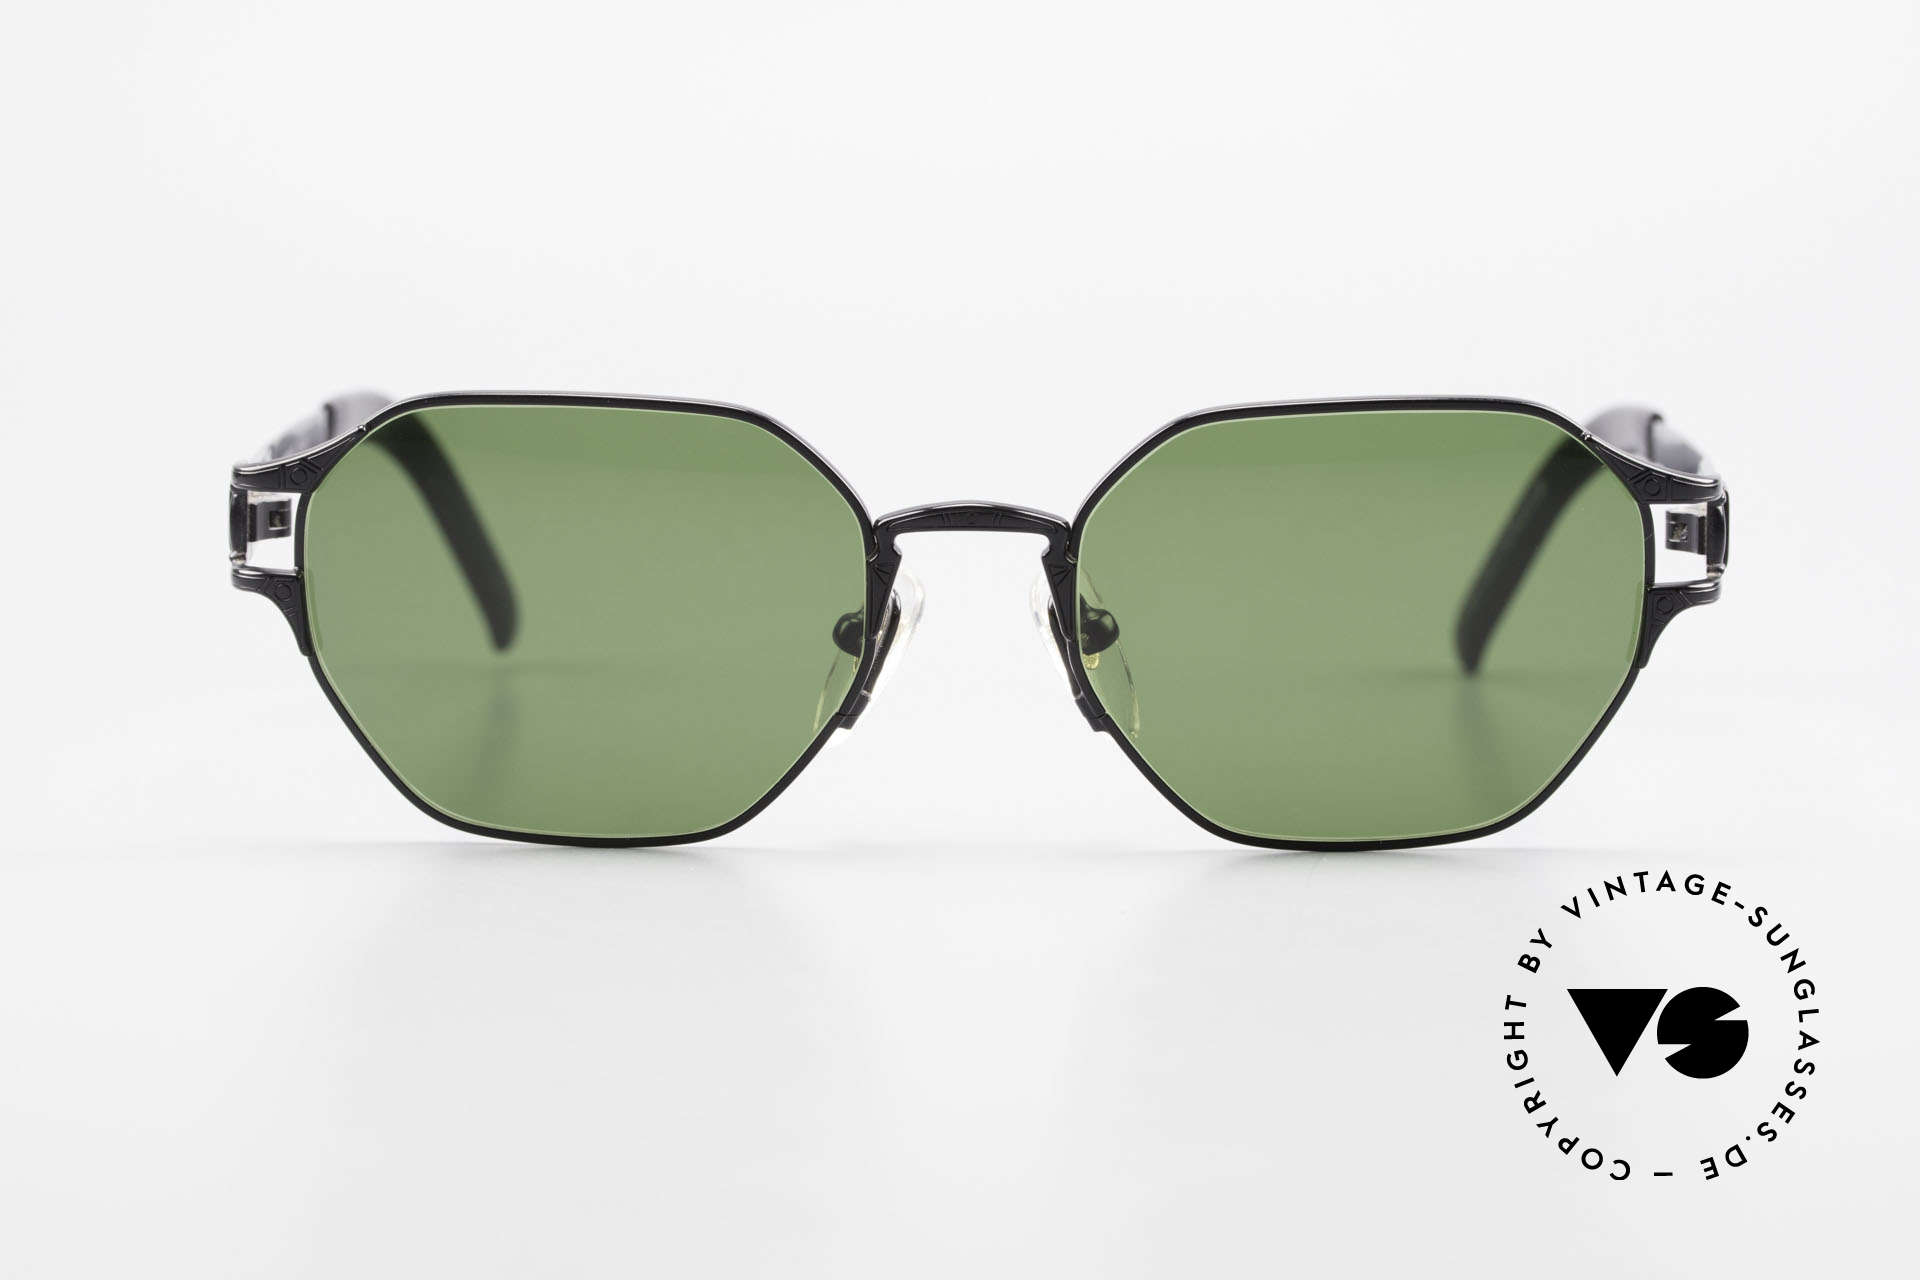 """Jean Paul Gaultier 58-4173 Square JPG 90's Designer Shades, with some subtle """"J.P.G."""" details on the frame, Made for Men and Women"""